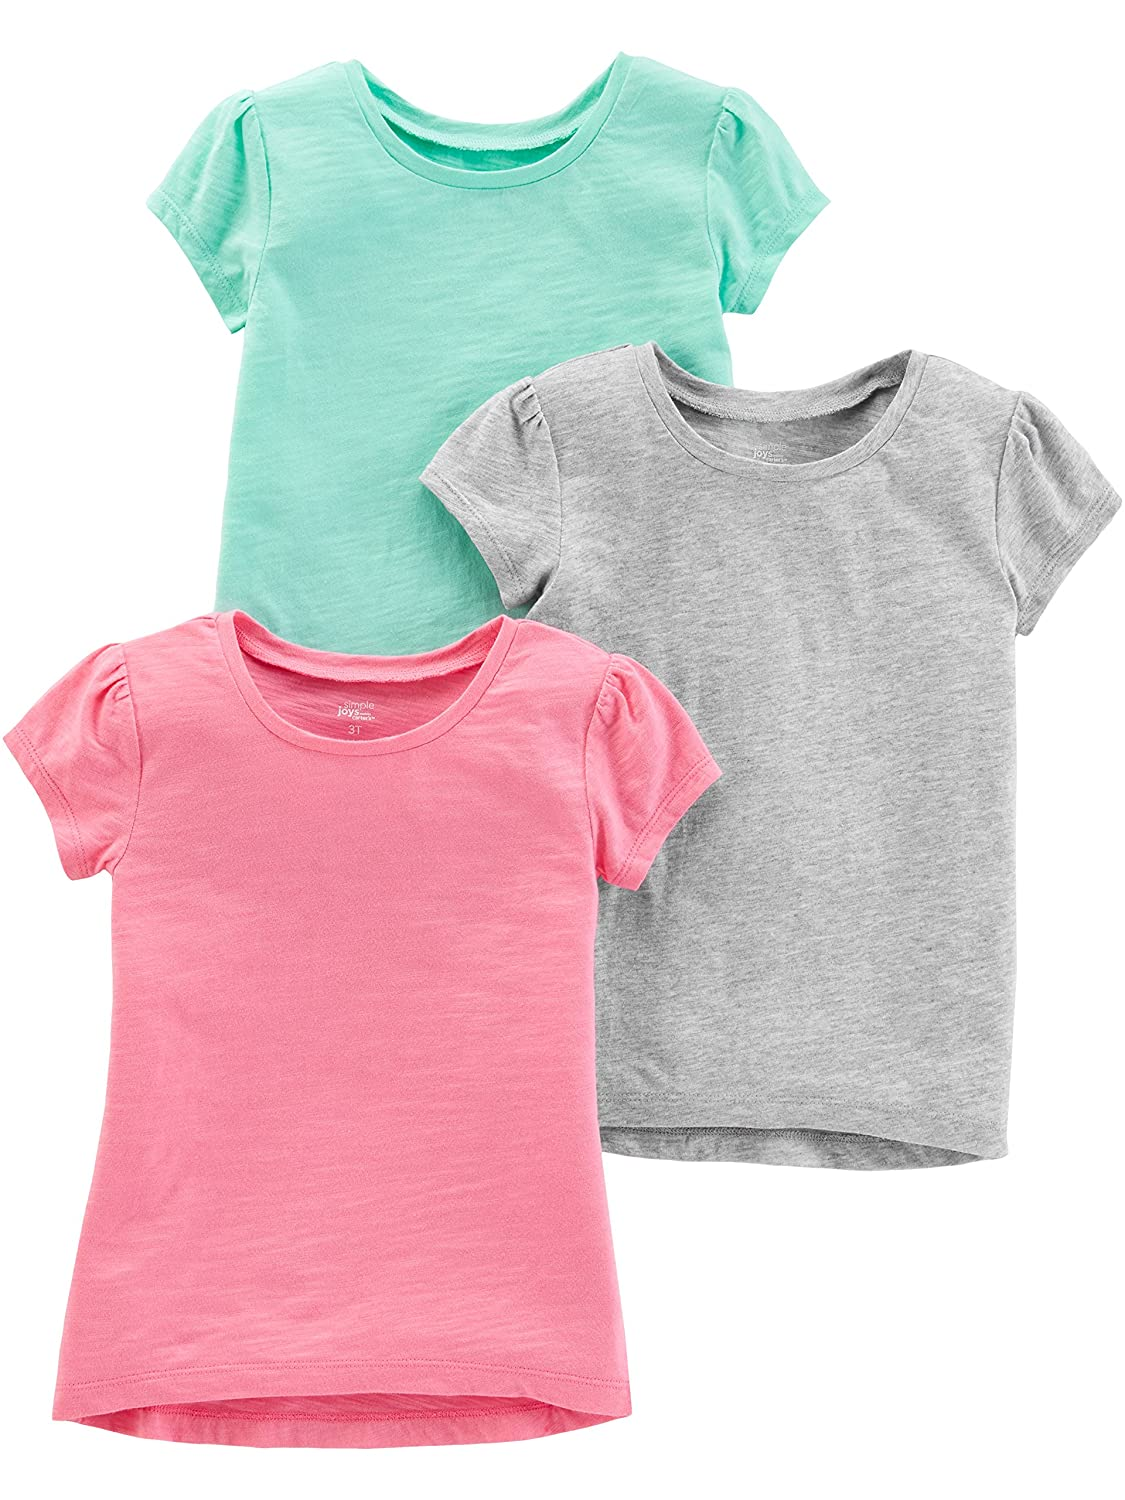 Simple Joys by Carter's Girls' Toddler 3-Pack Solid Short-Sleeve Tee Shirts Simple Joys by Carter's P53G007